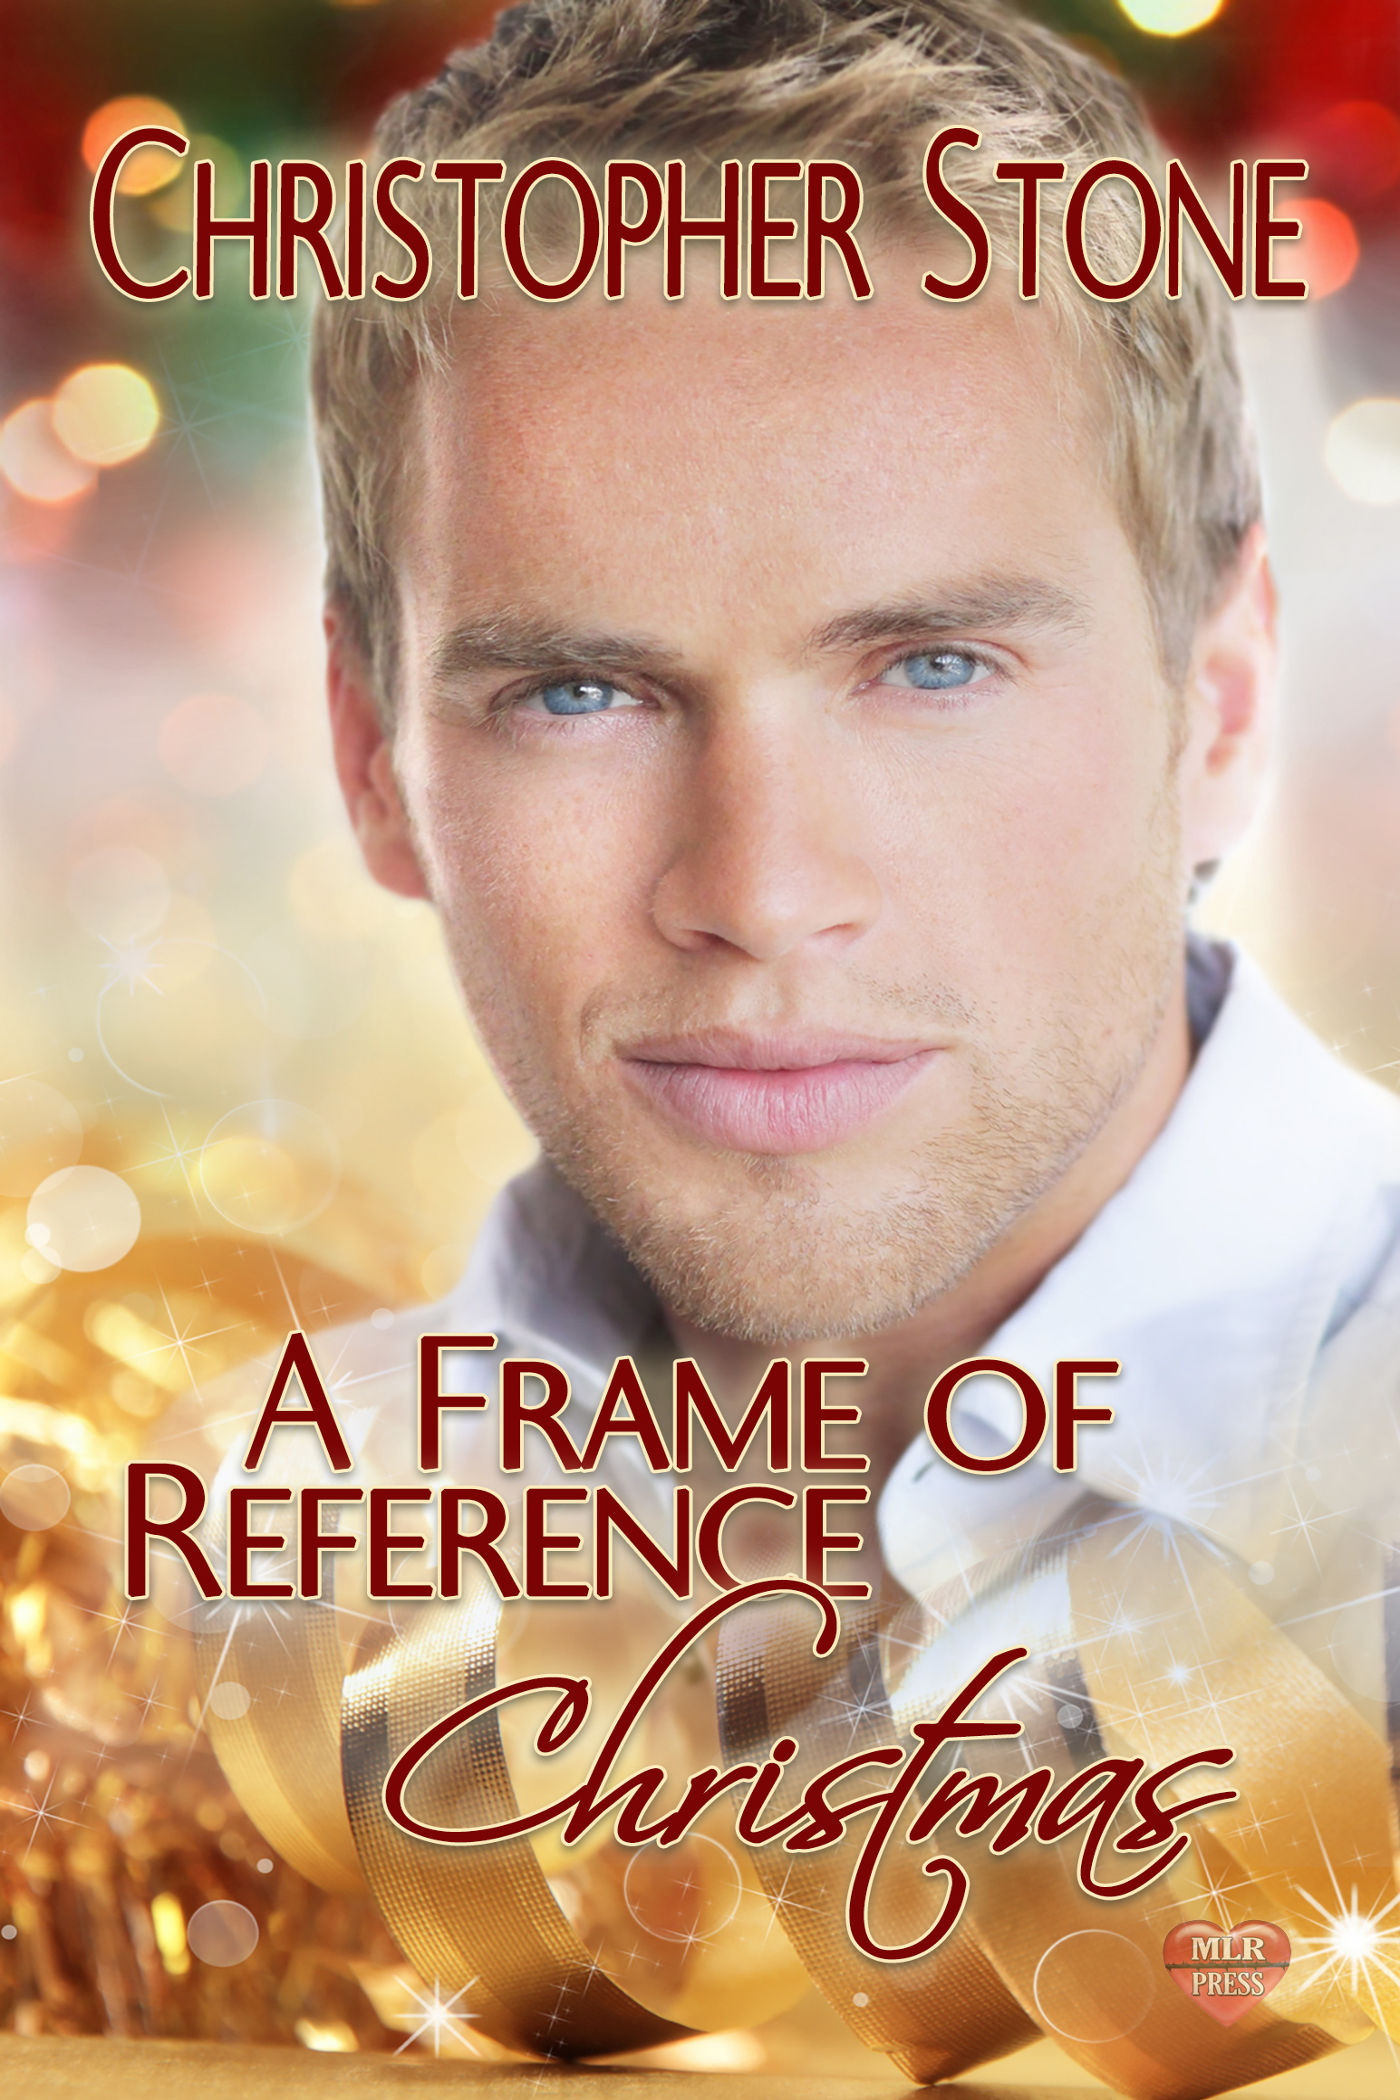 Review: A Frame of Reference Christmas by Christopher Stone